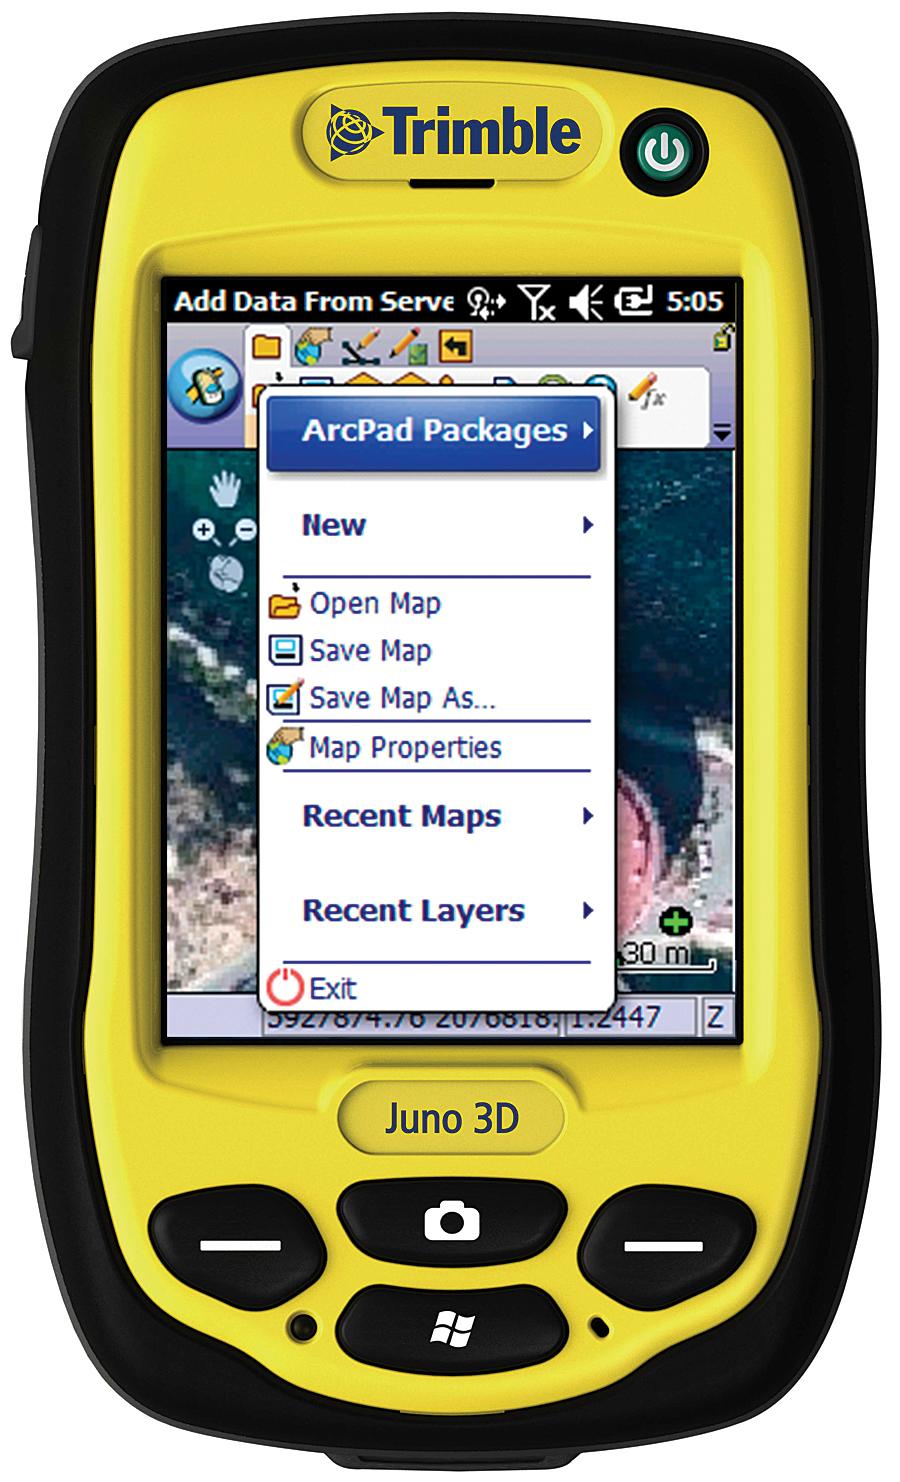 Store ArcPad projects and QuickProject templates in ArcGIS Online for sharing with others (device shown: Trimble Juno 3D).